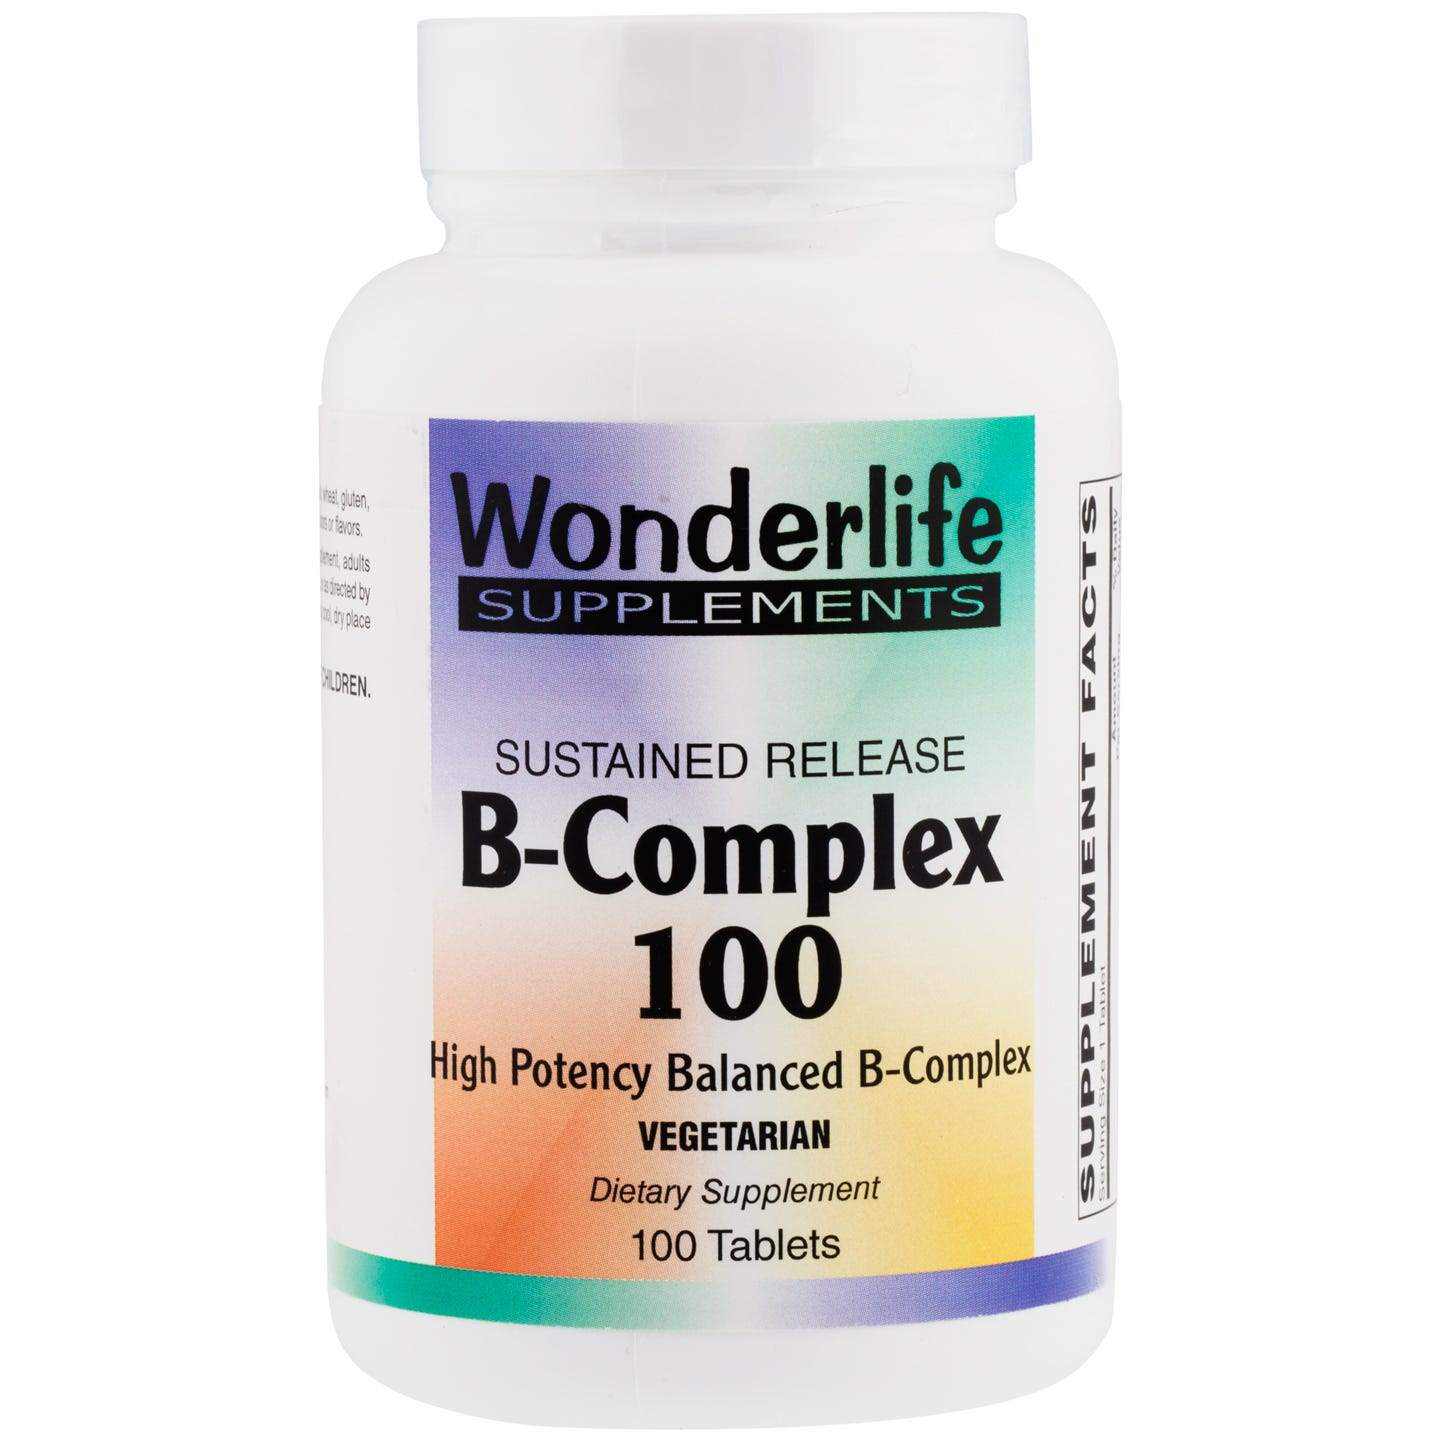 B-Complex 100, Sustained Release (100 Tablets), Wonderlife - Rapid Diet Weight Loss Products Shop